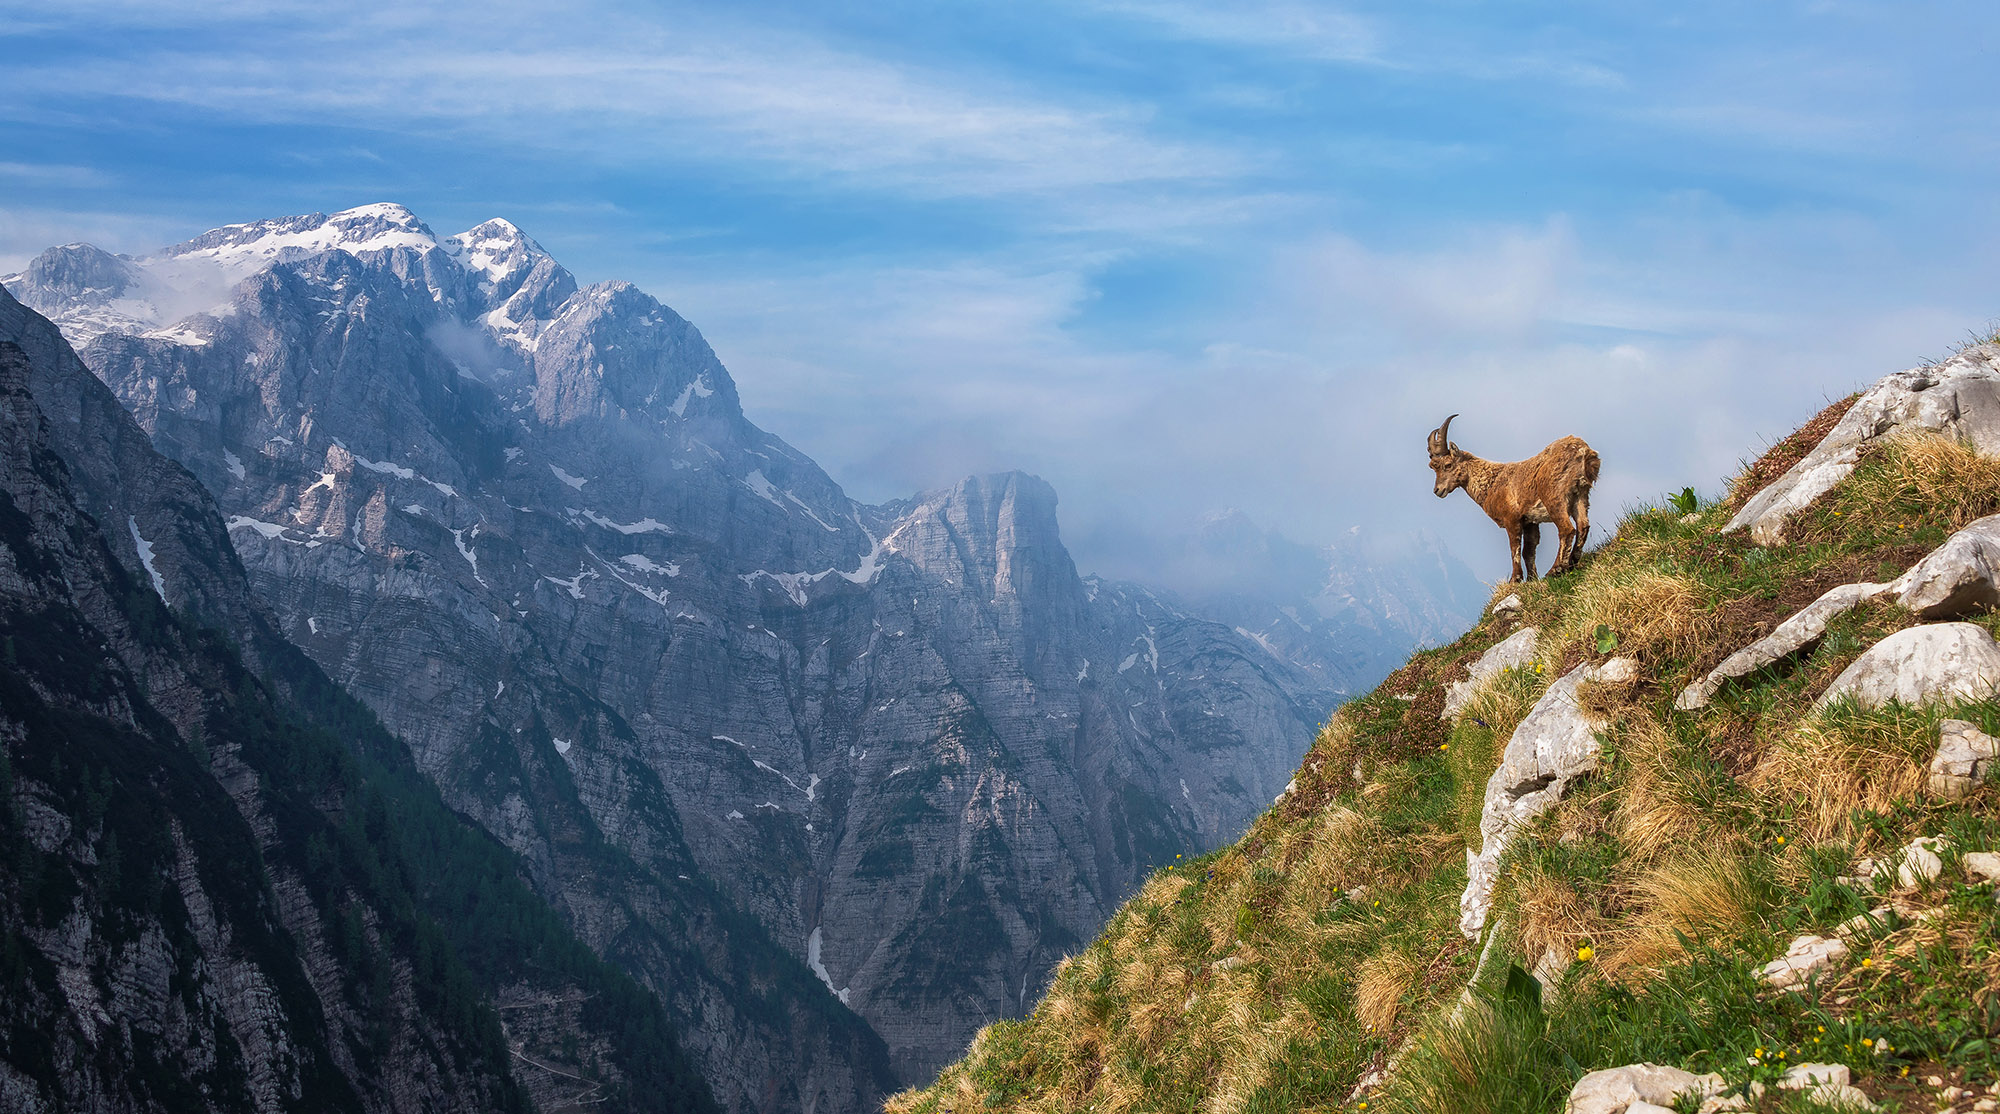 Tazmania Wallpaper Iphone Dreamy Pixel Alpine Ibex In The Morning Dreamy Pixel